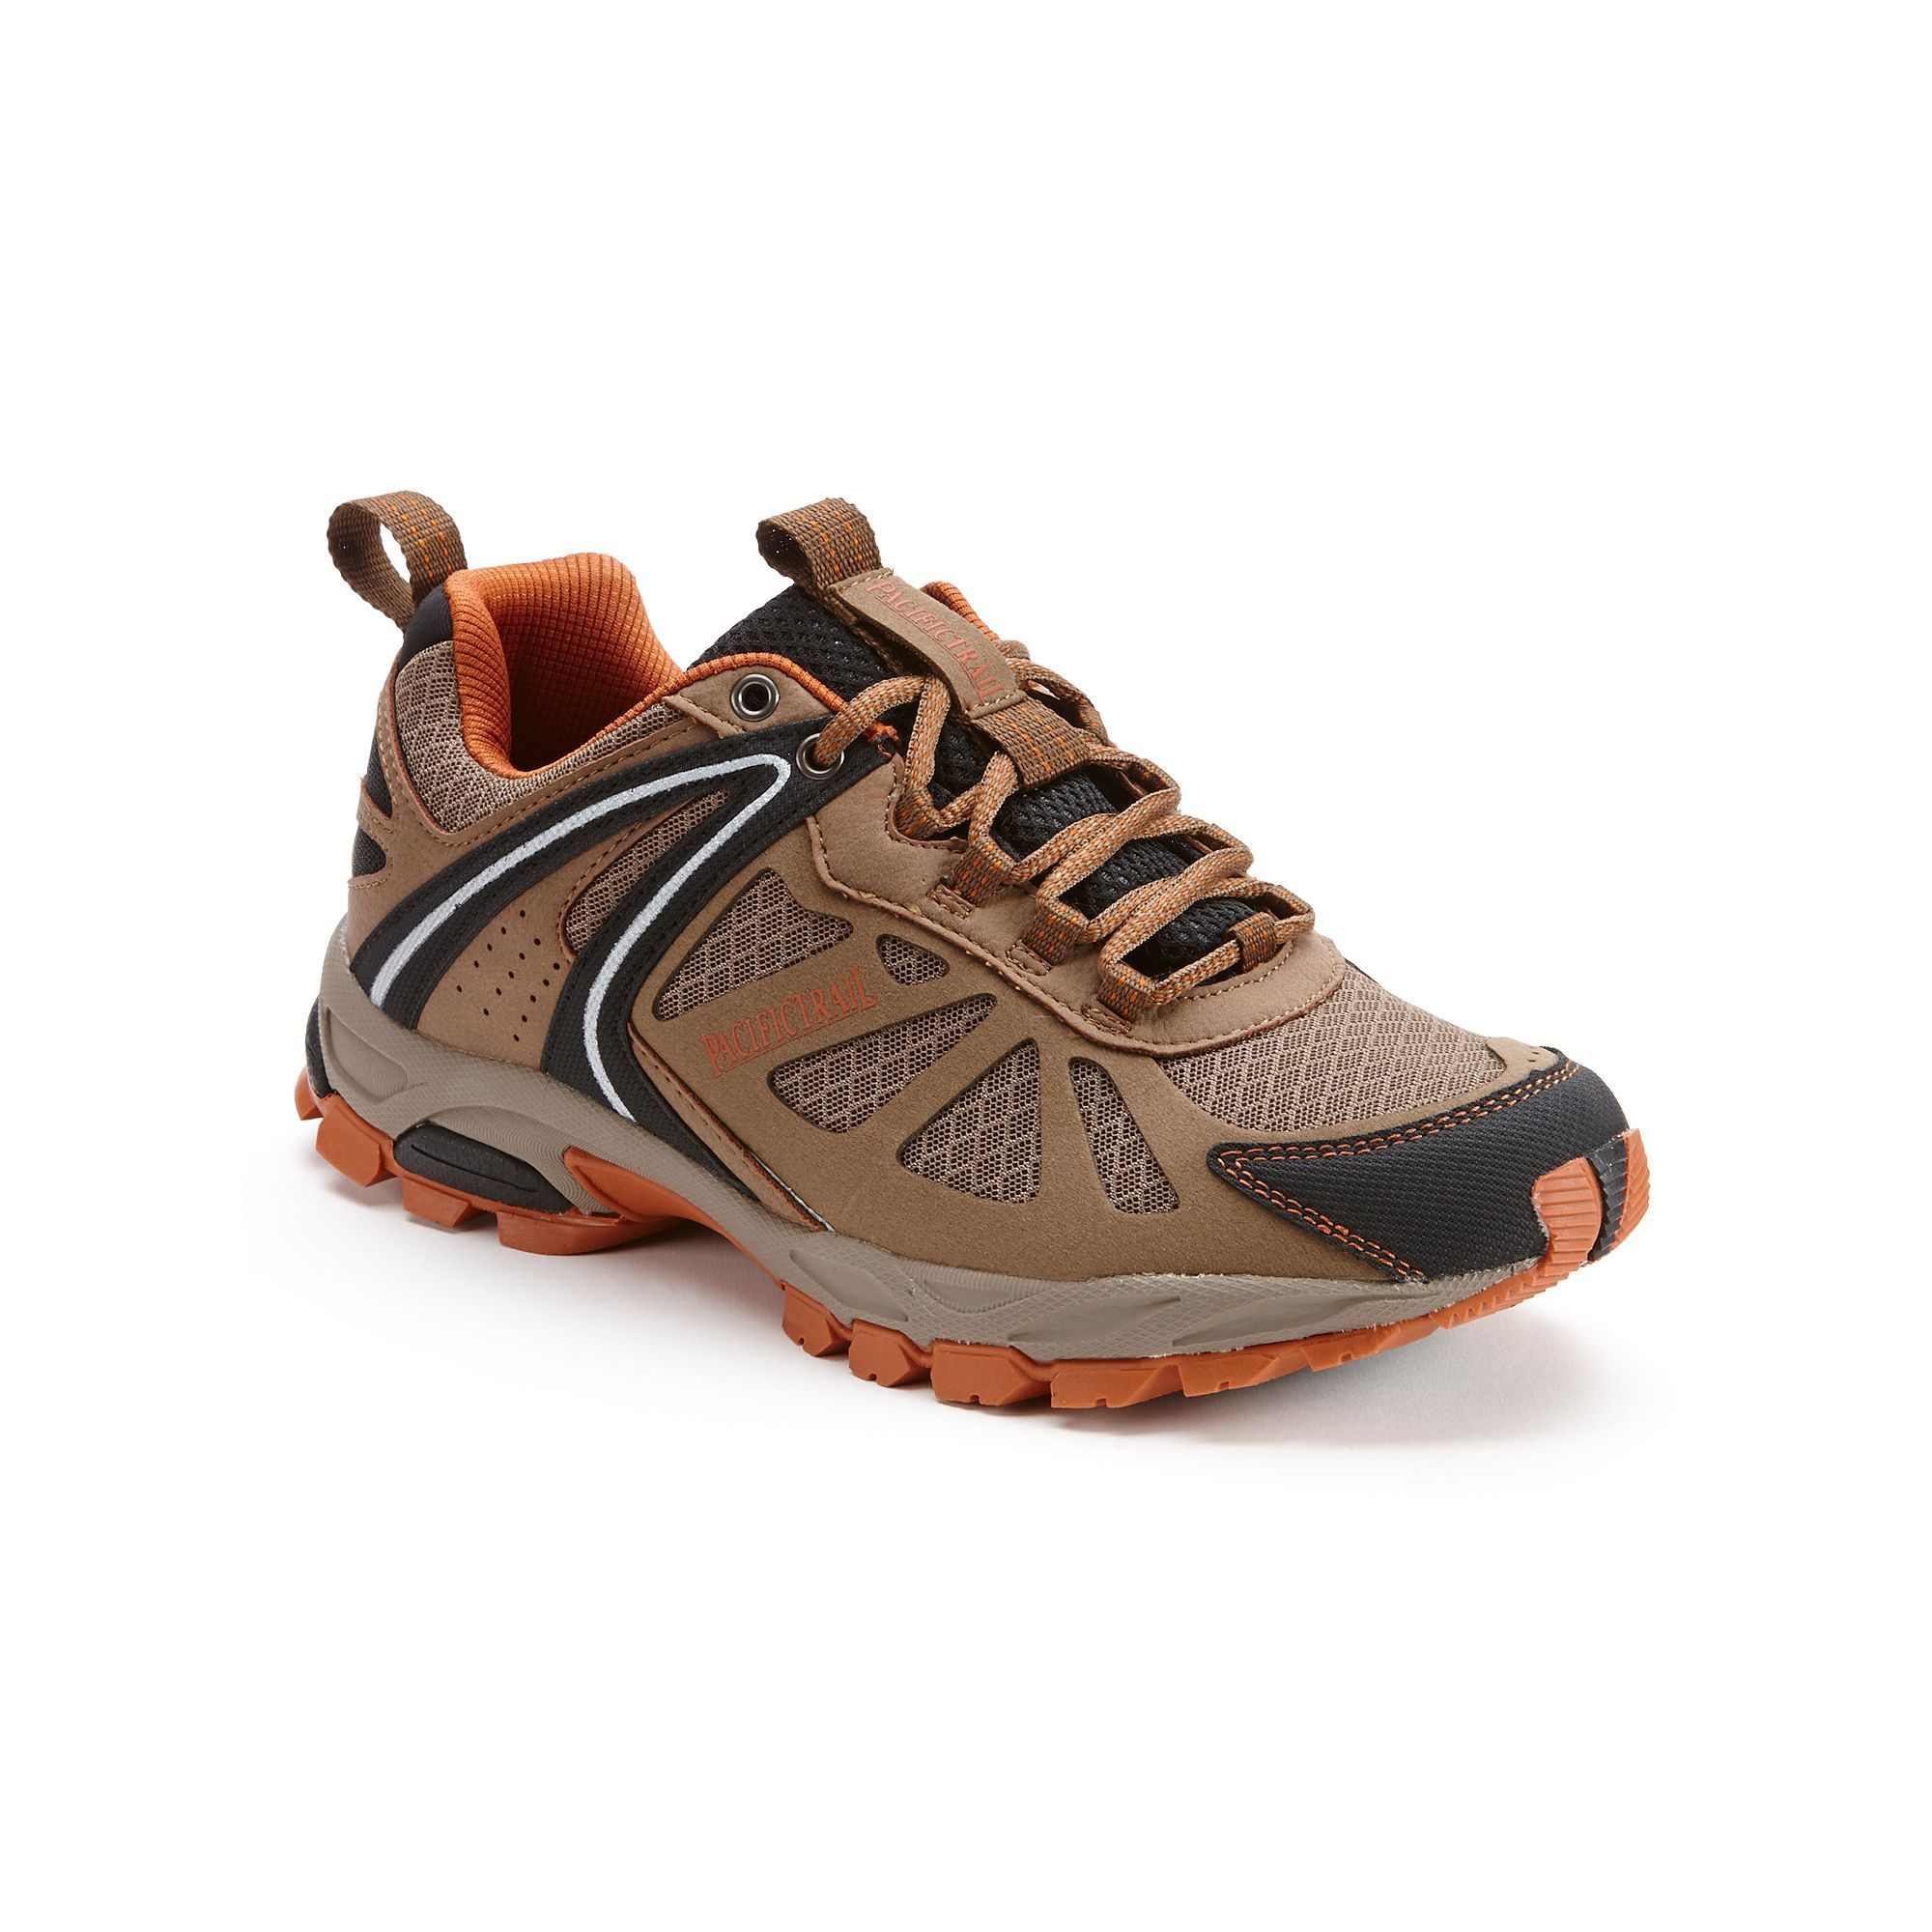 Details about Timberland Mountain Athletics Mens Sandals Hiking Water Sport Outdoor Shoe 11